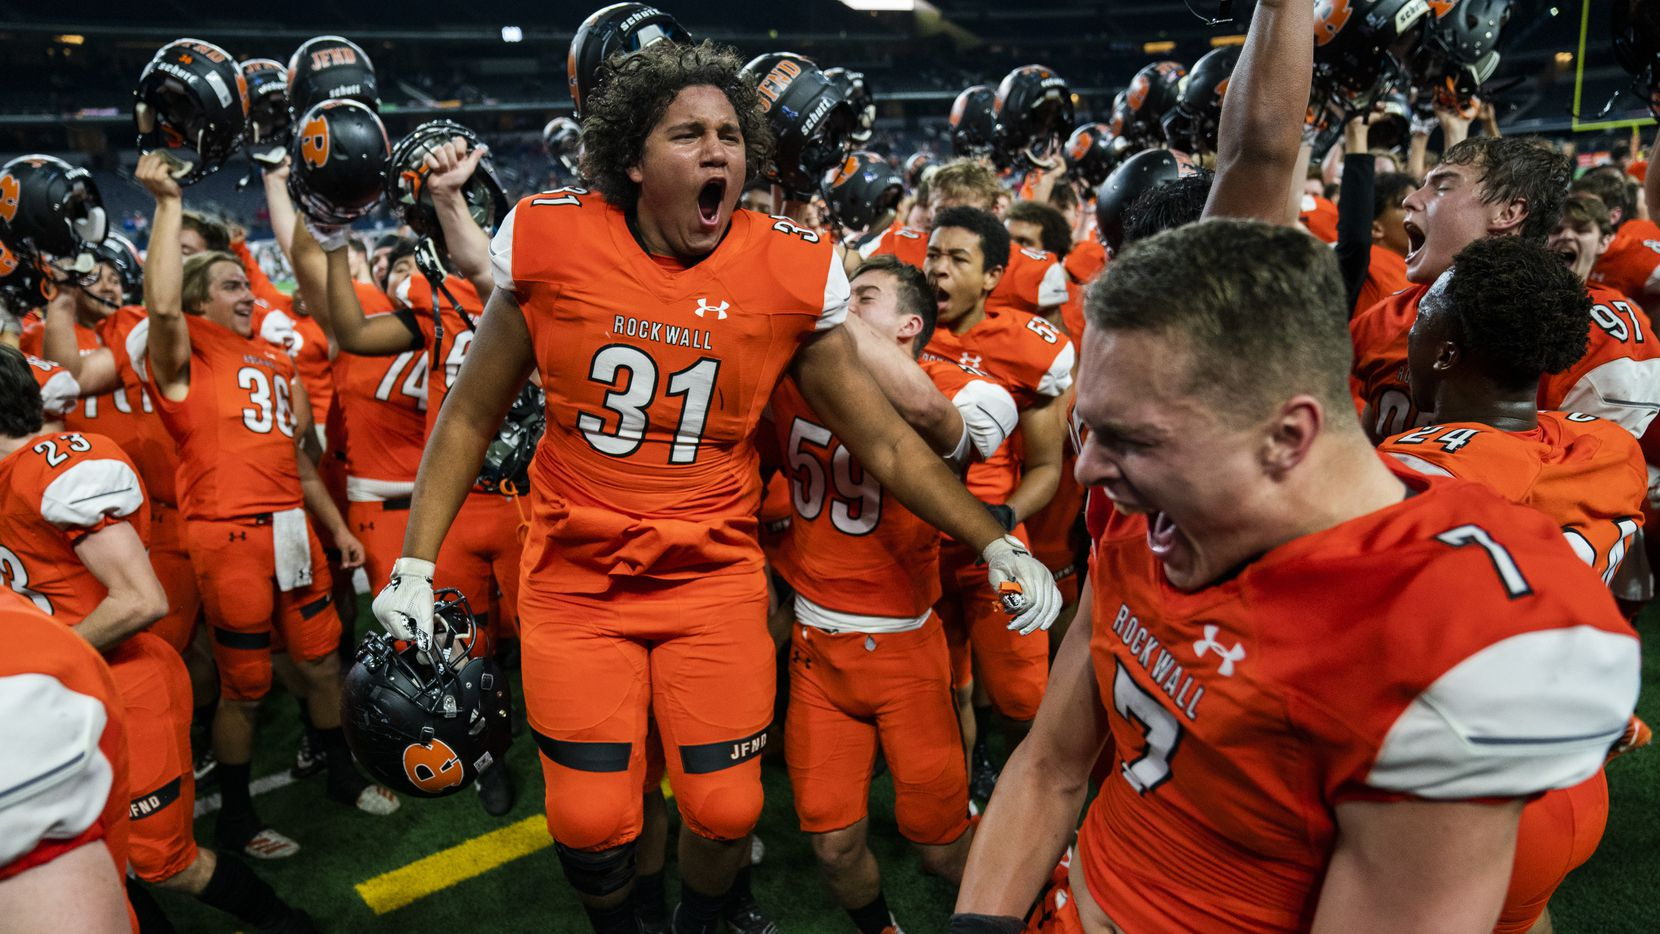 Rockwall celebrates a 60-59 win over Allen in a Class 6A Division I area-round high school football playoff game between Allen and Rockwall on Friday, November 22, 2019 at AT&T Stadium in Arlington.